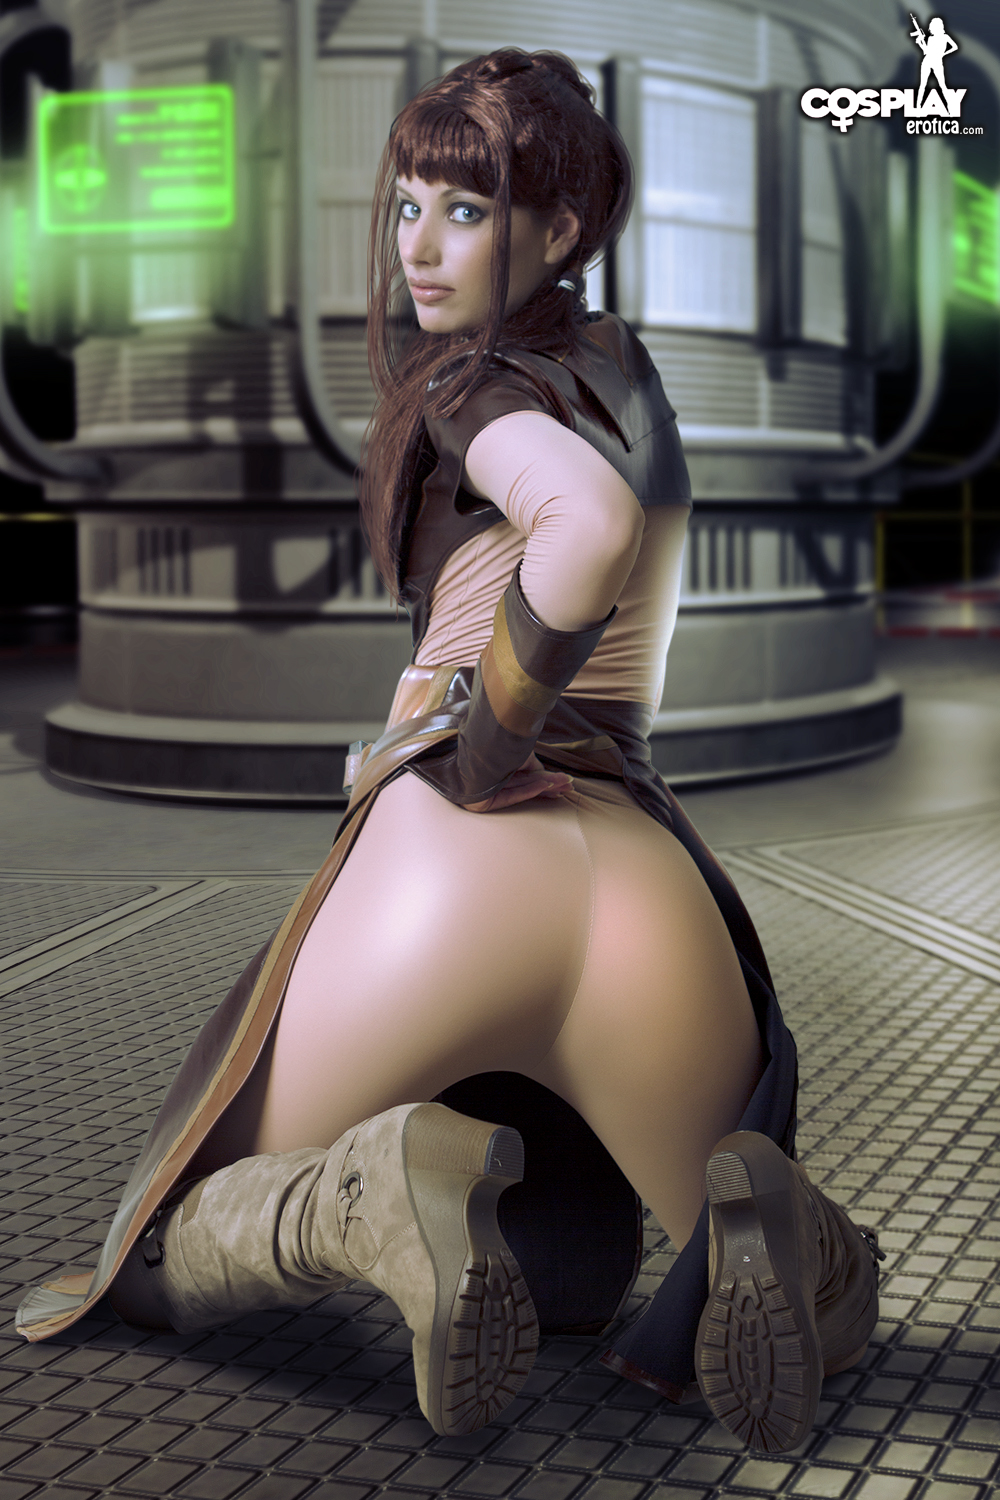 Star wars nudes erotic scenes